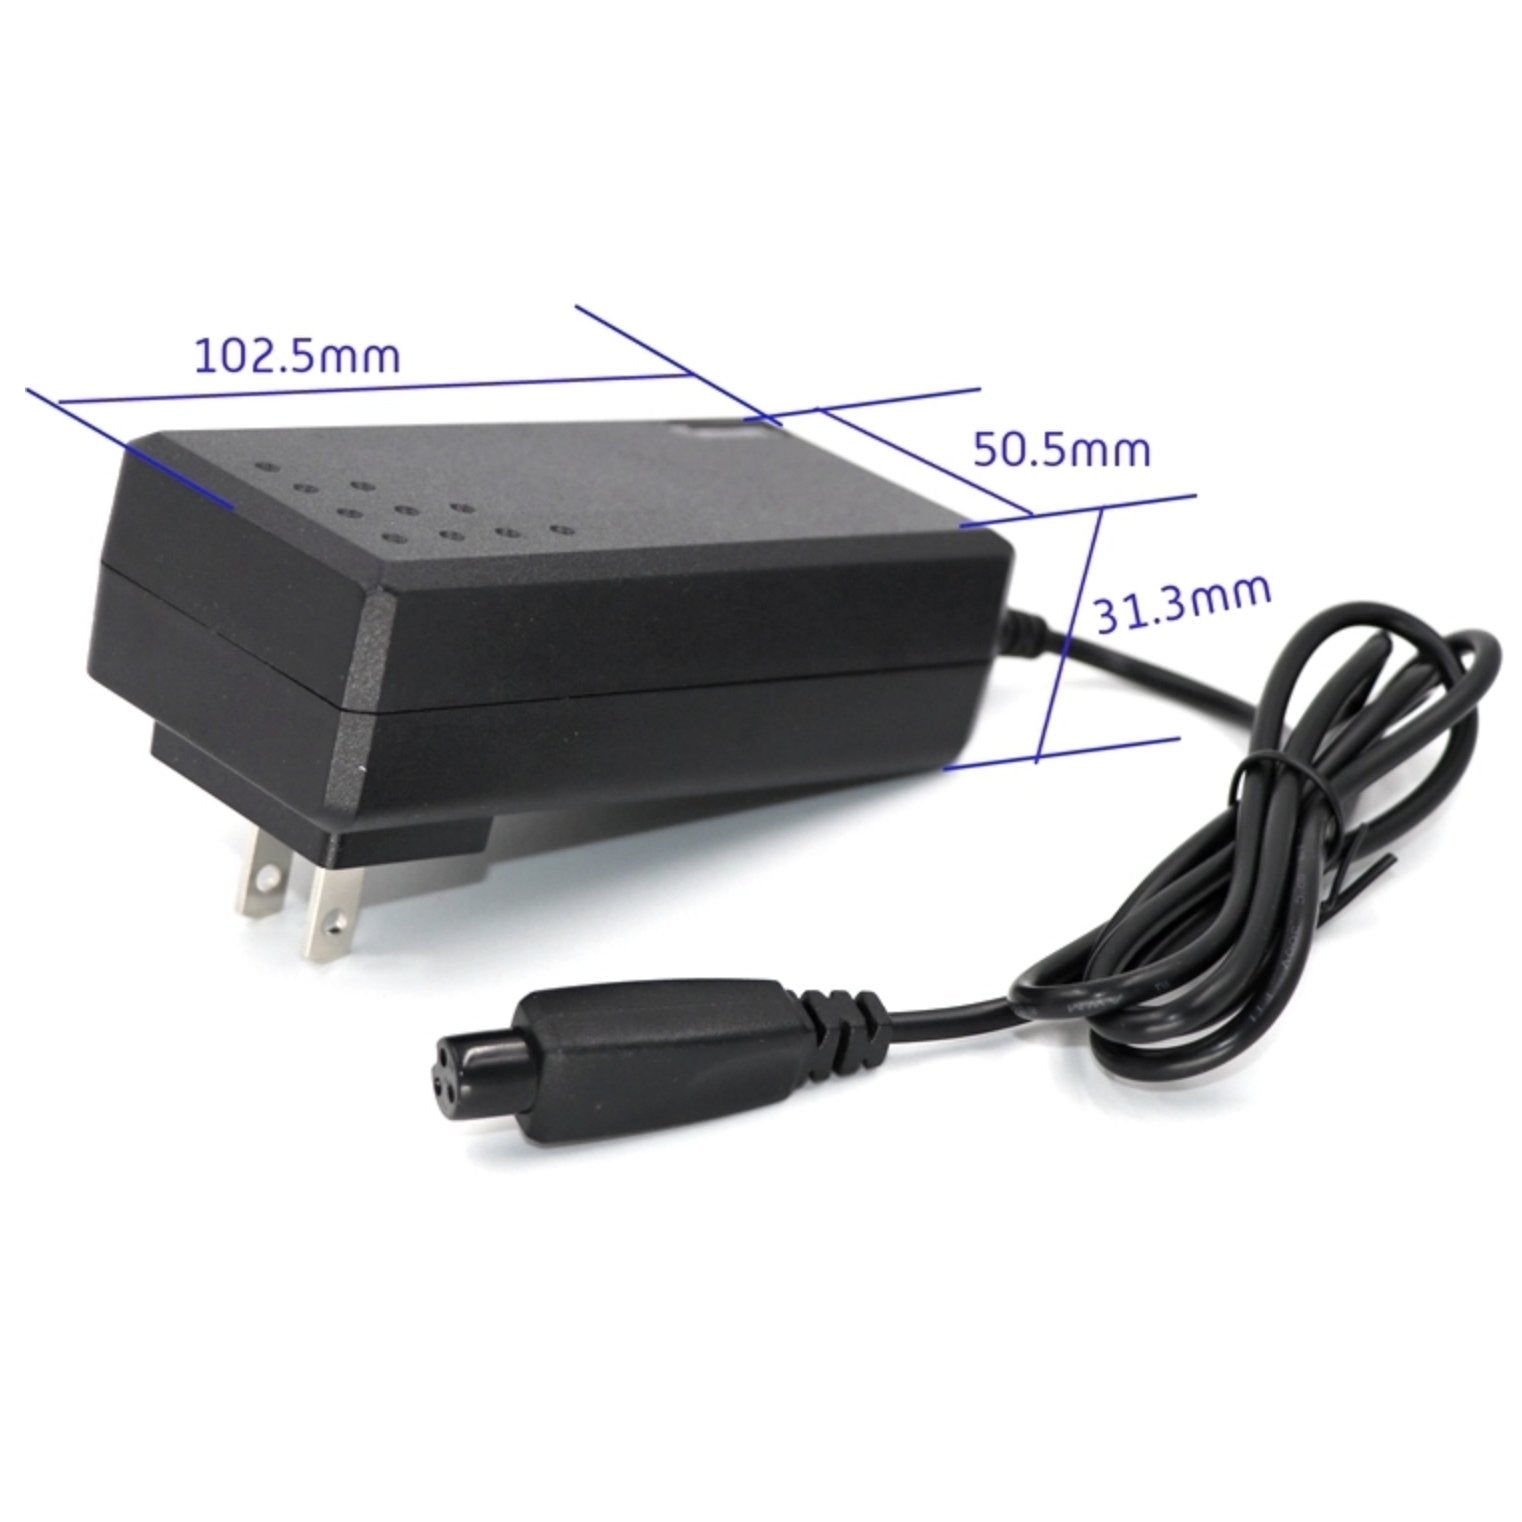 25.2v Lithium Ion Charger for Hoverboard